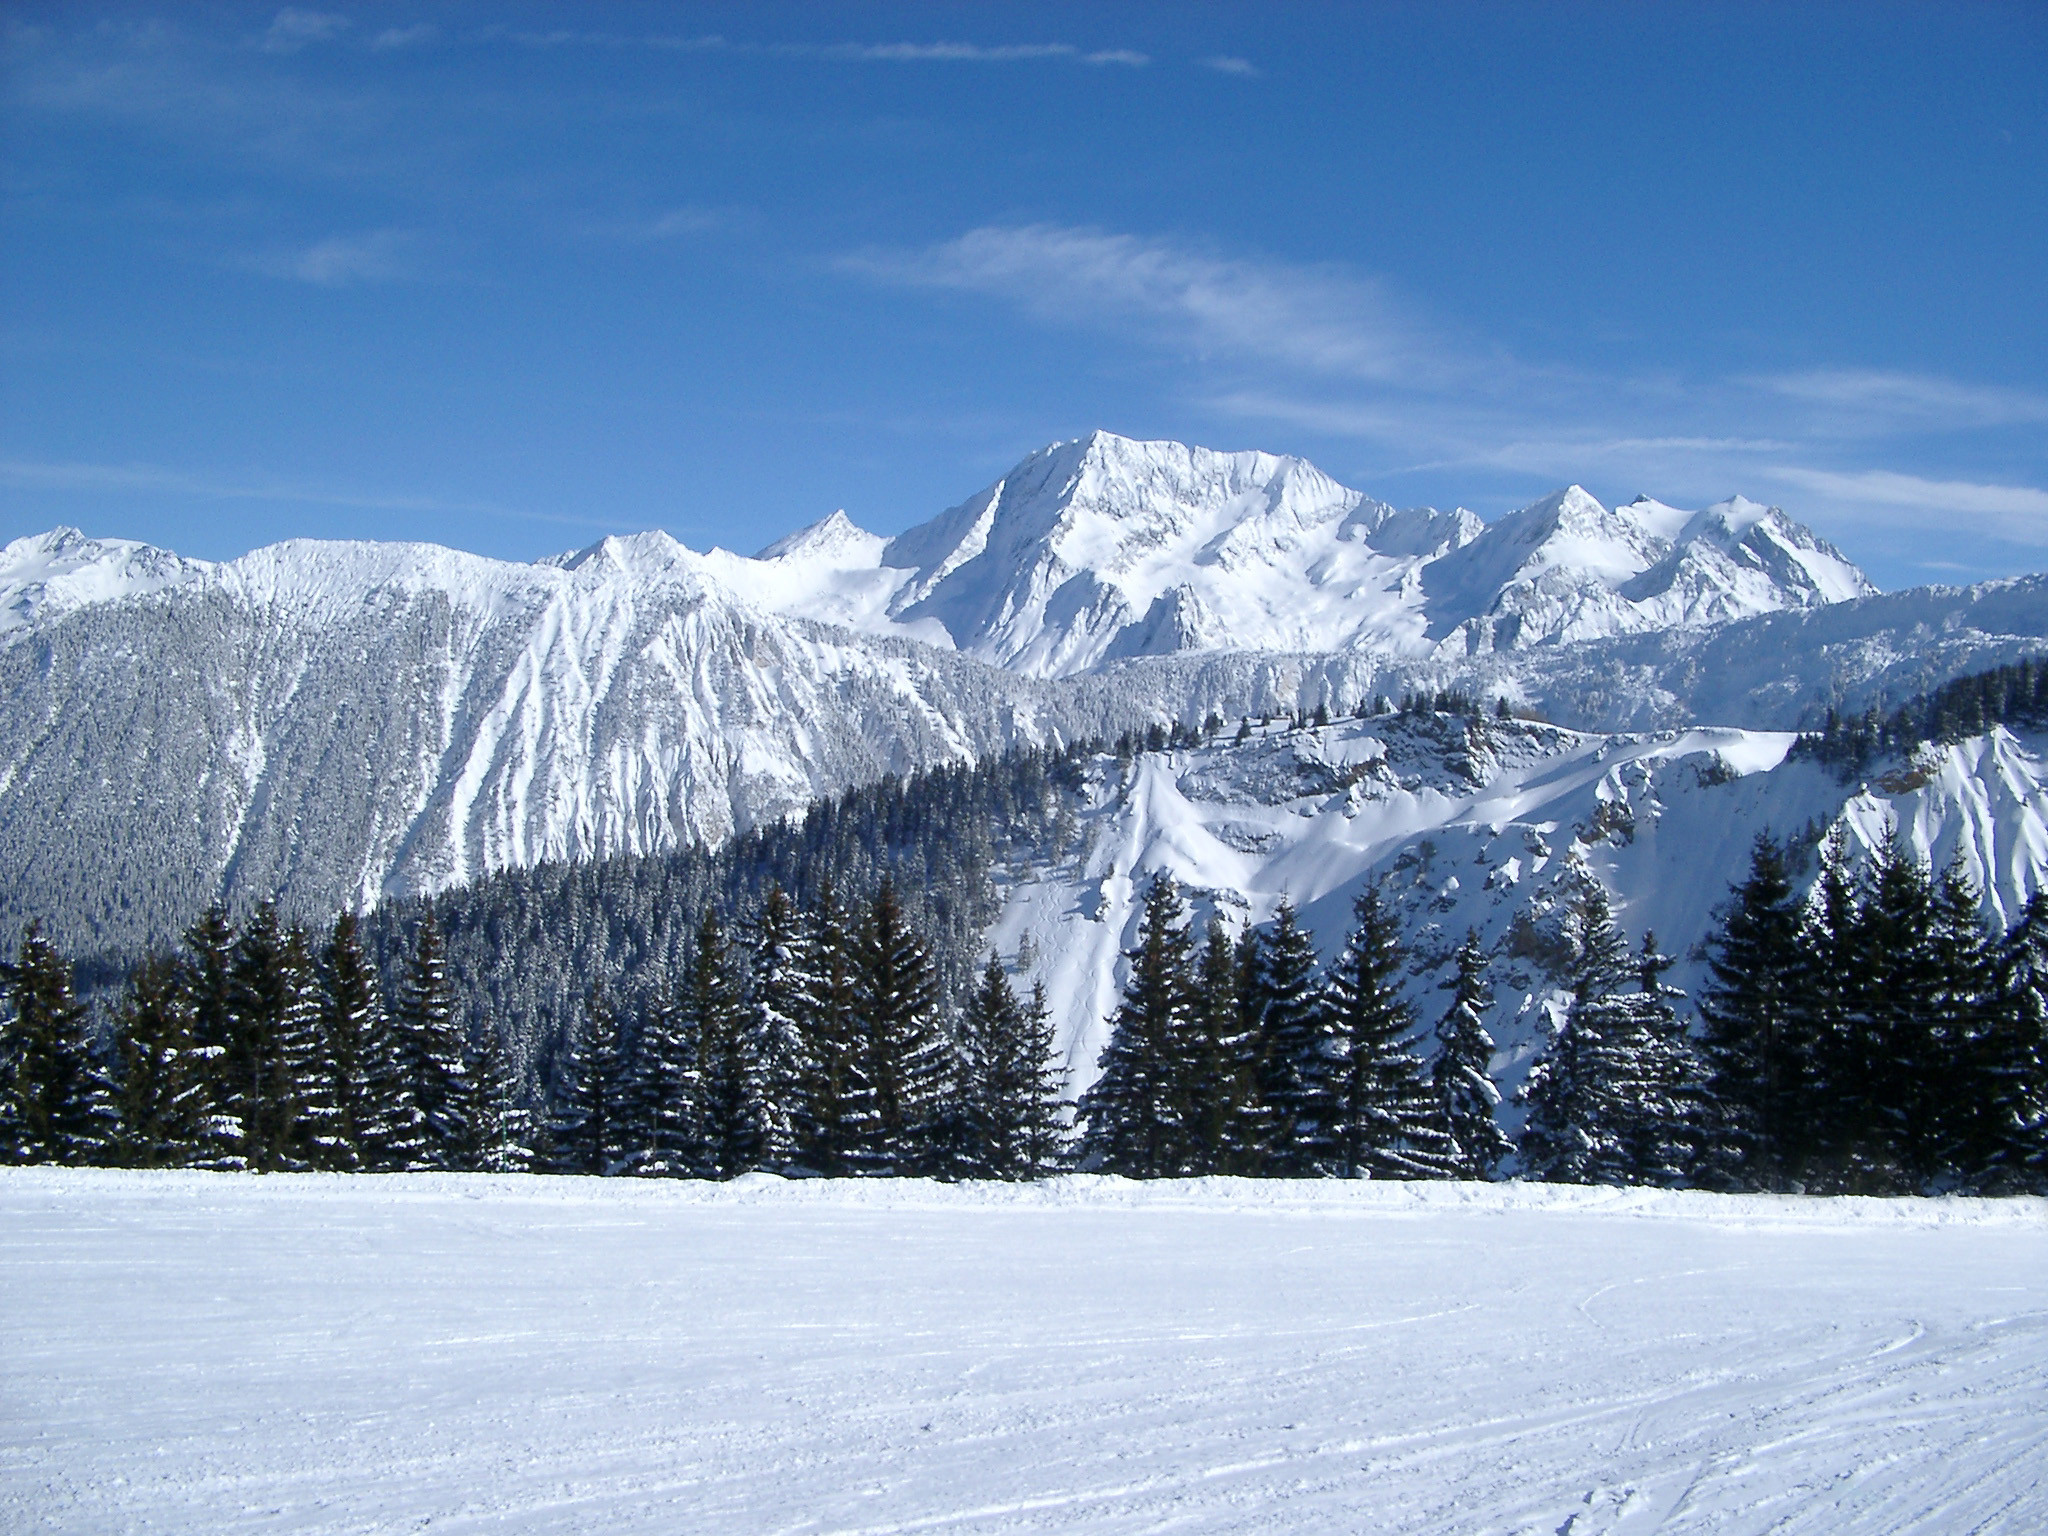 Mountains, Fir Trees and Wide Field Filled with Snow on Winter Holiday .